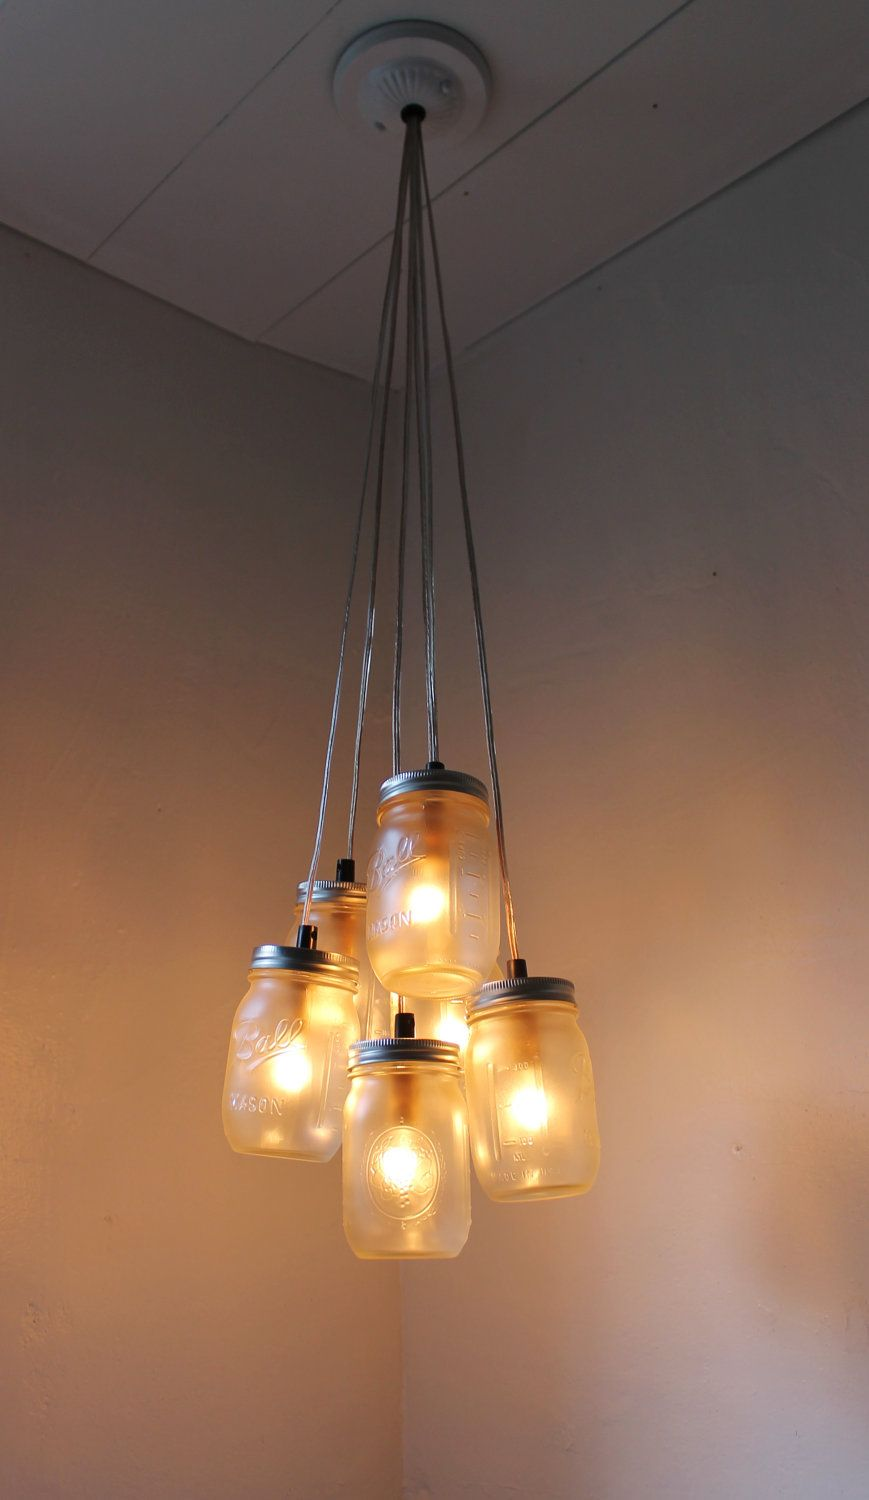 Fog mason jar chandelier with frosted ball mason by bootsngus fog mason jar chandelier with frosted ball mason jars upcycled lighting fixture ready for direct hardwire modern lamp by bootsngus arubaitofo Images